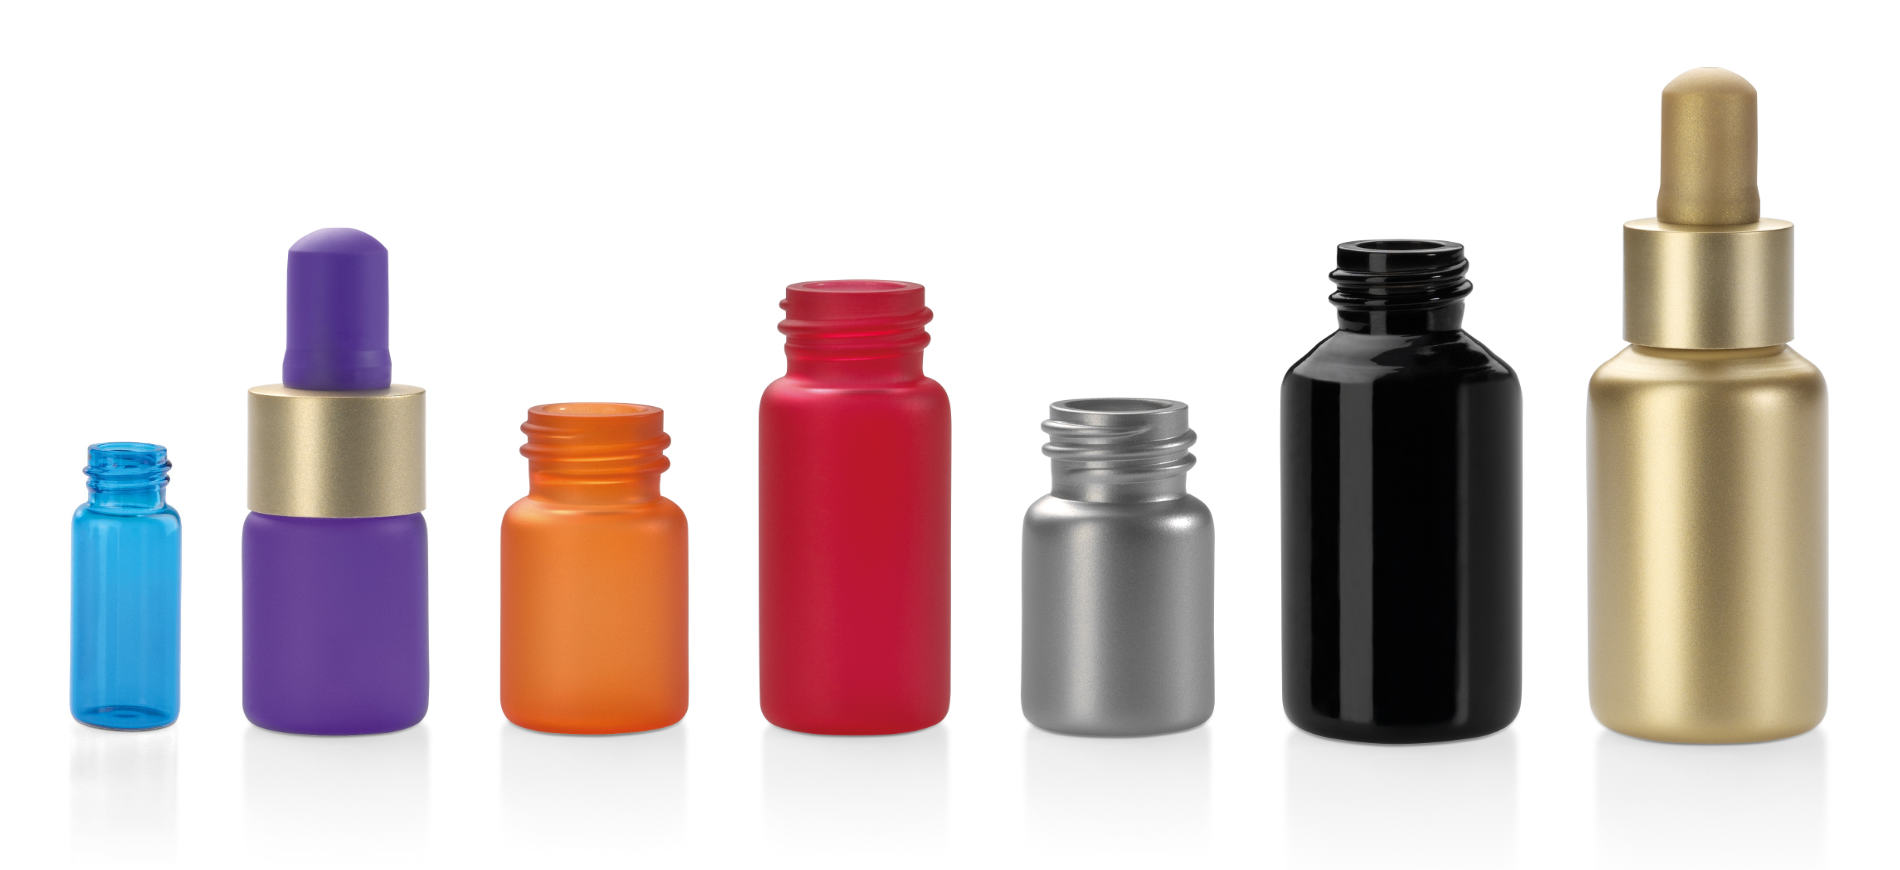 Colours and finishing options for glass tube bottles for cosmetics